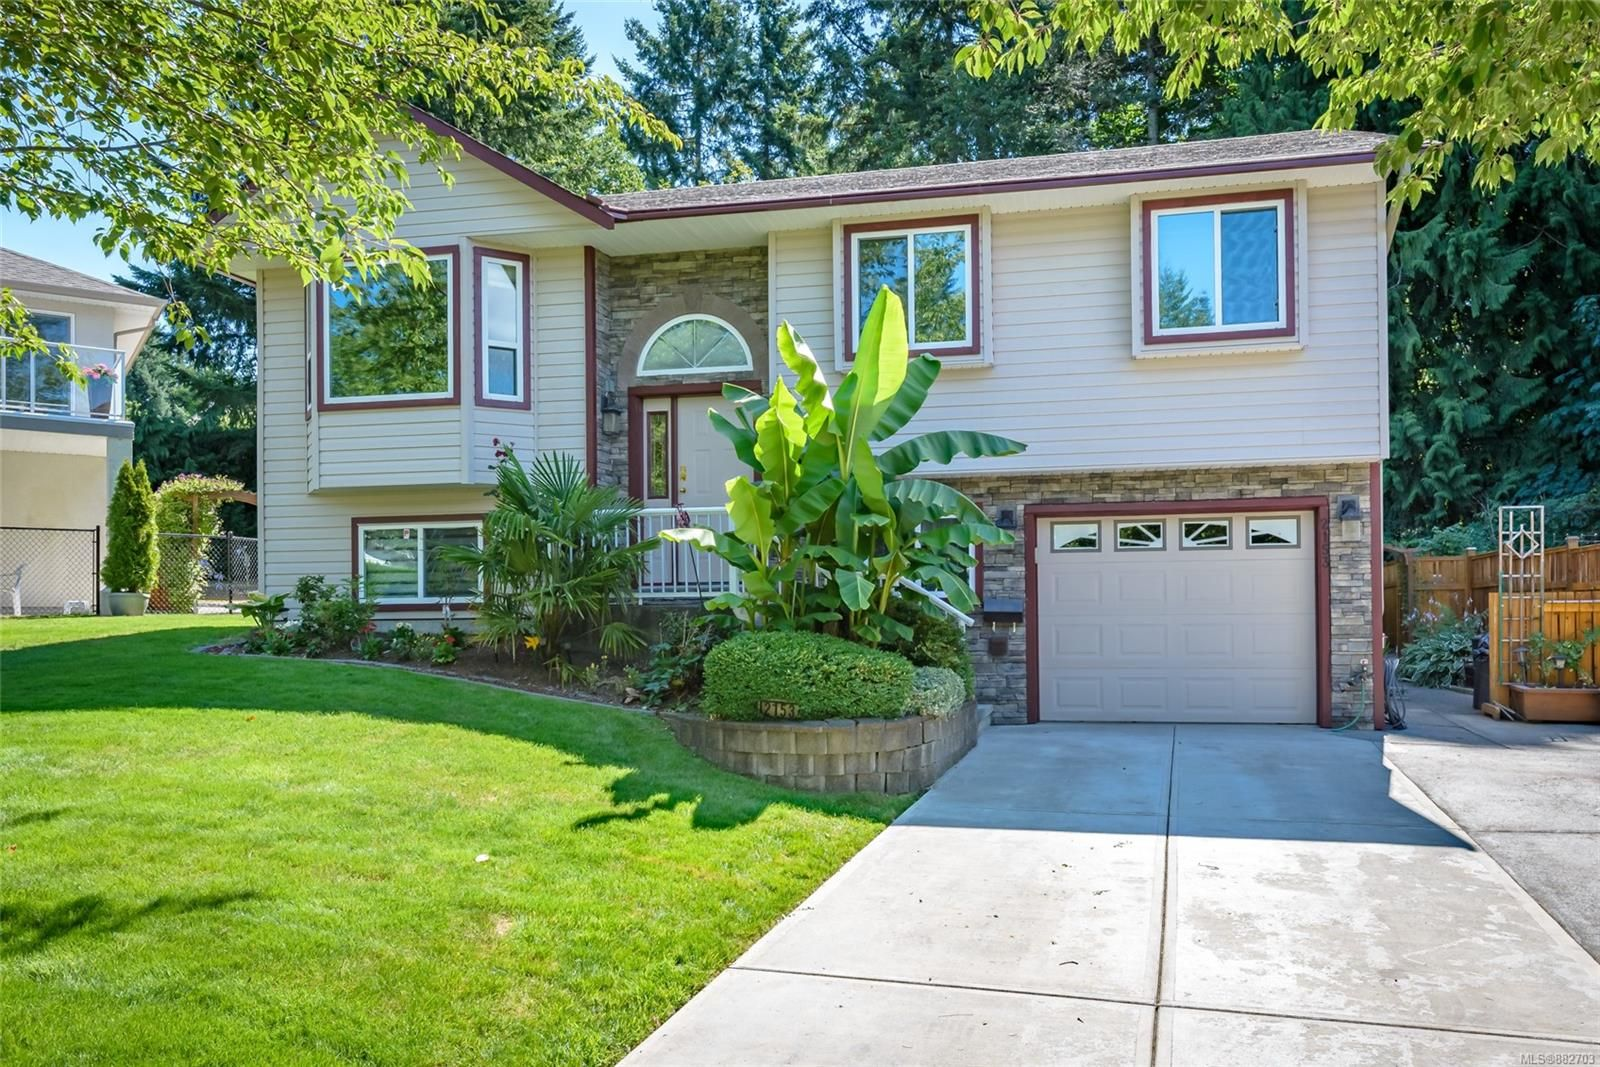 Main Photo: 2153 Anna Pl in : CV Courtenay East House for sale (Comox Valley)  : MLS®# 882703